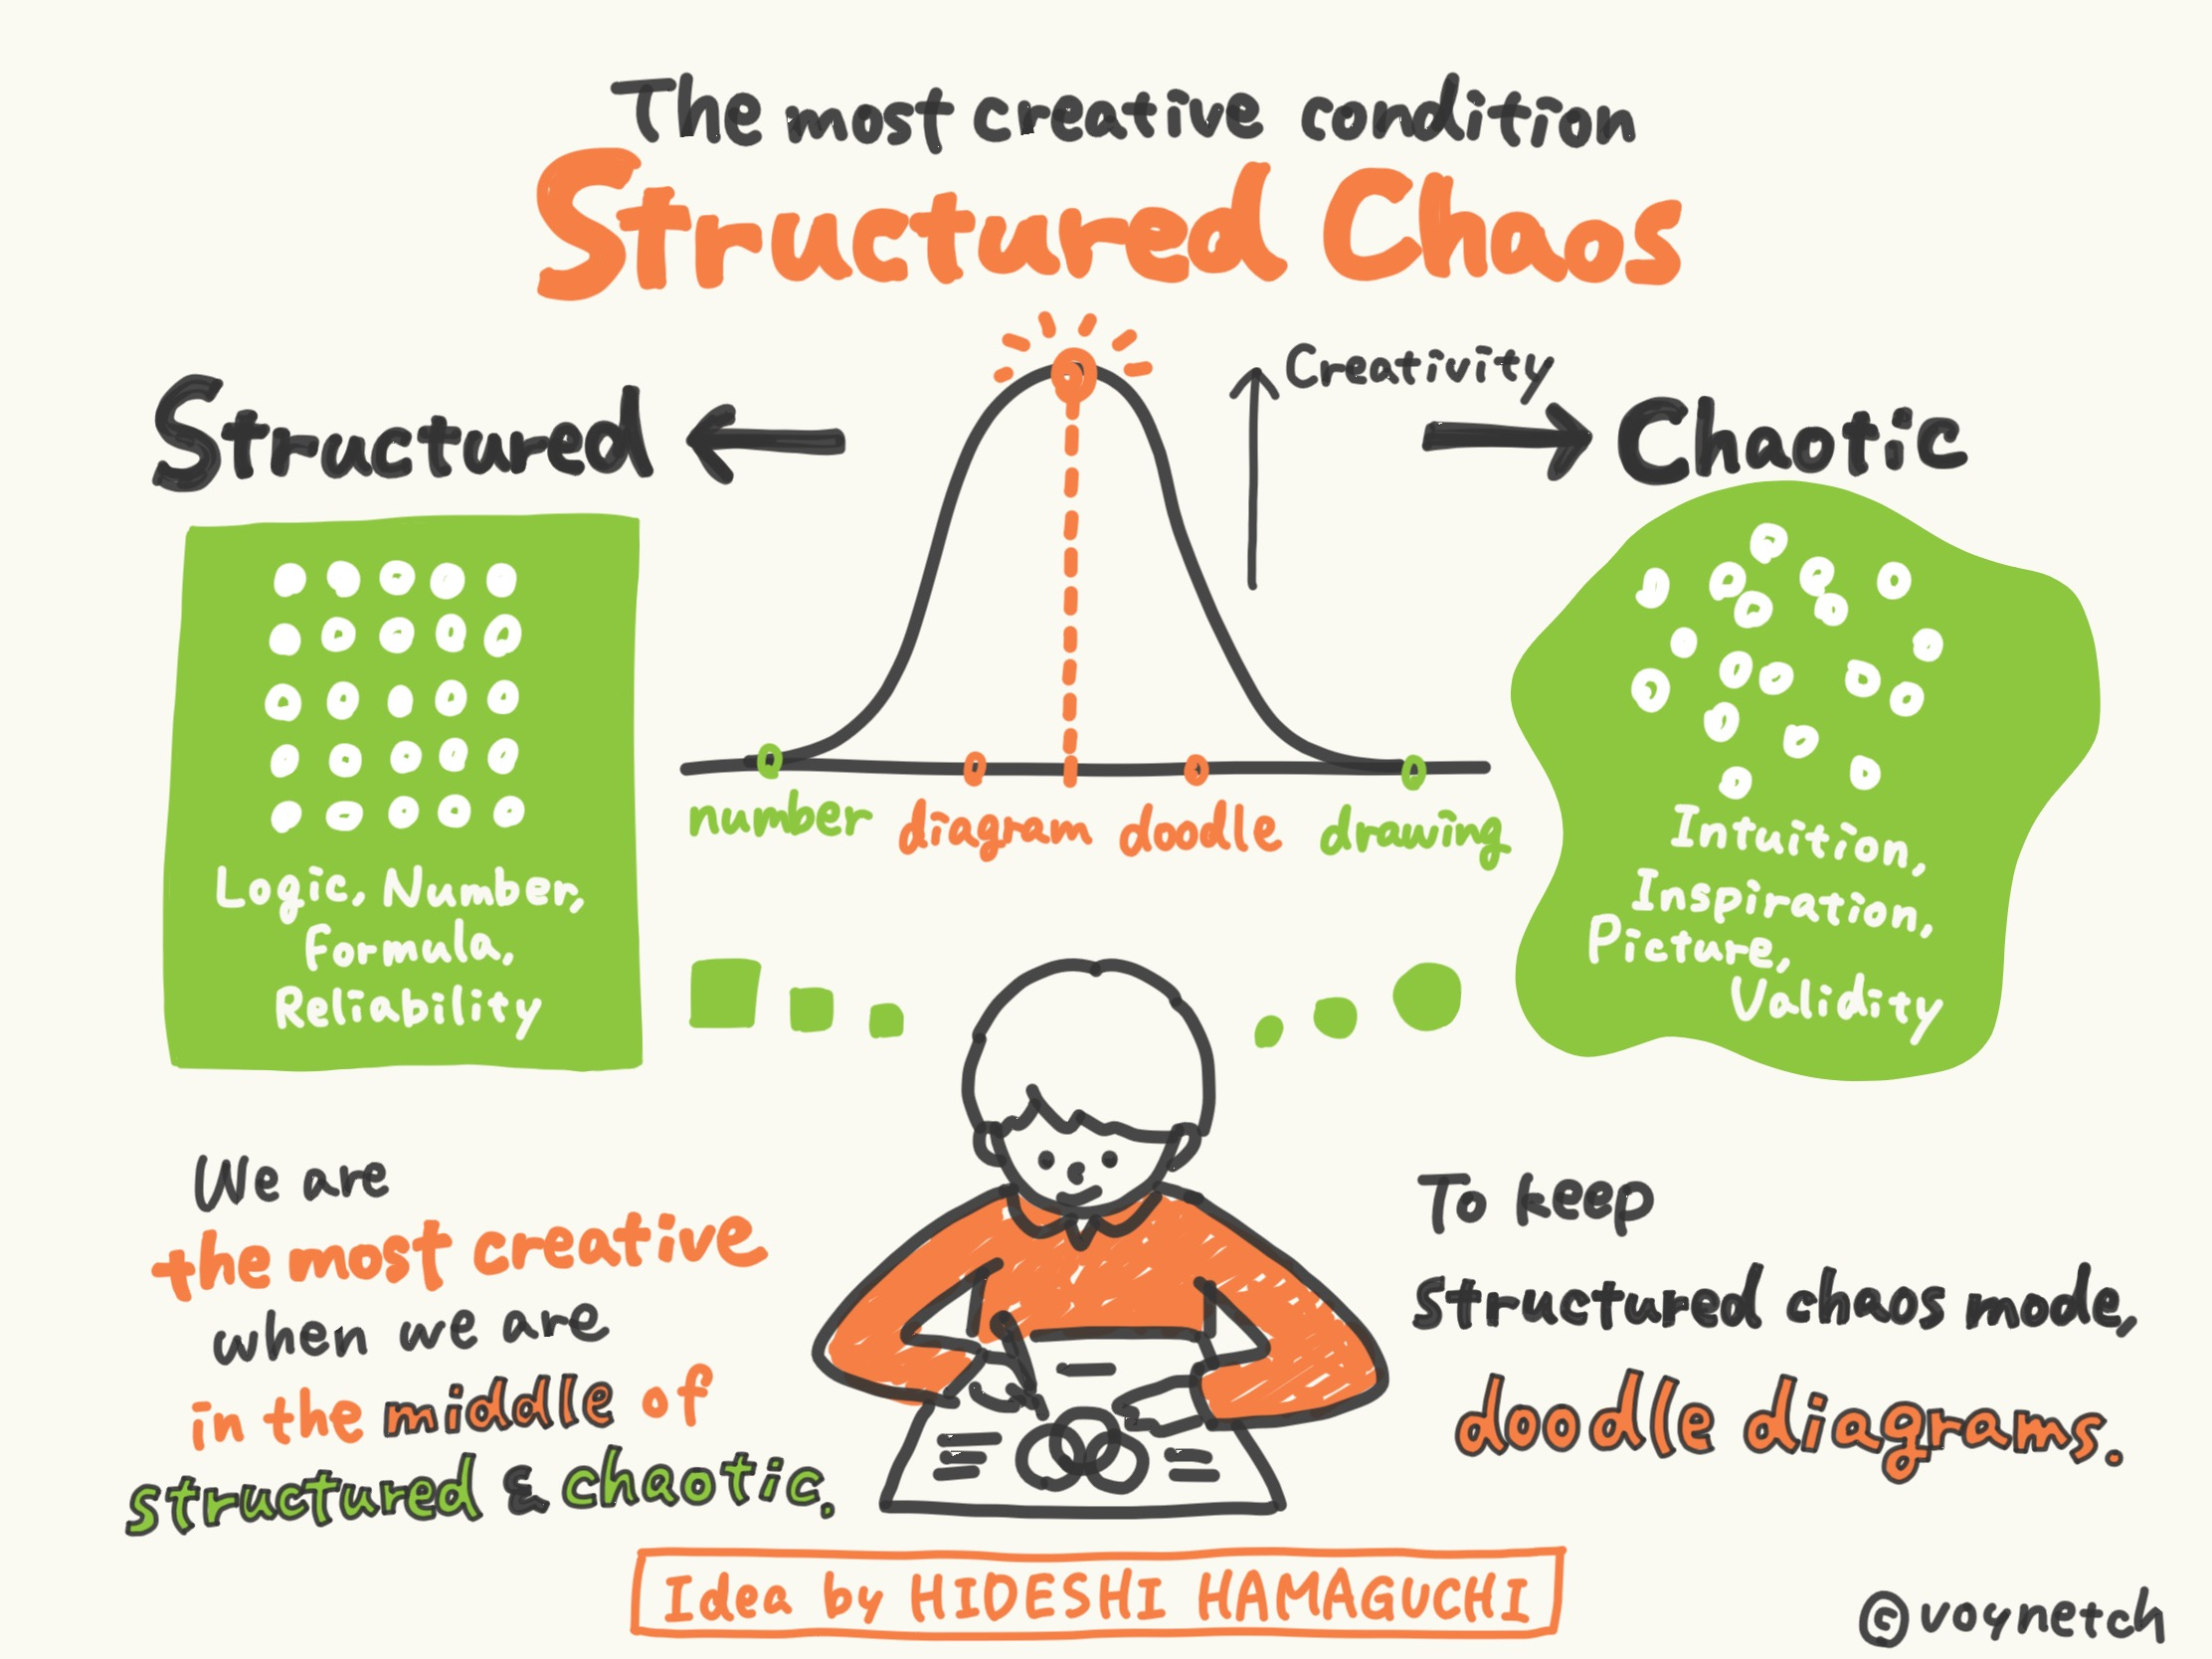 Structured Chaos Image